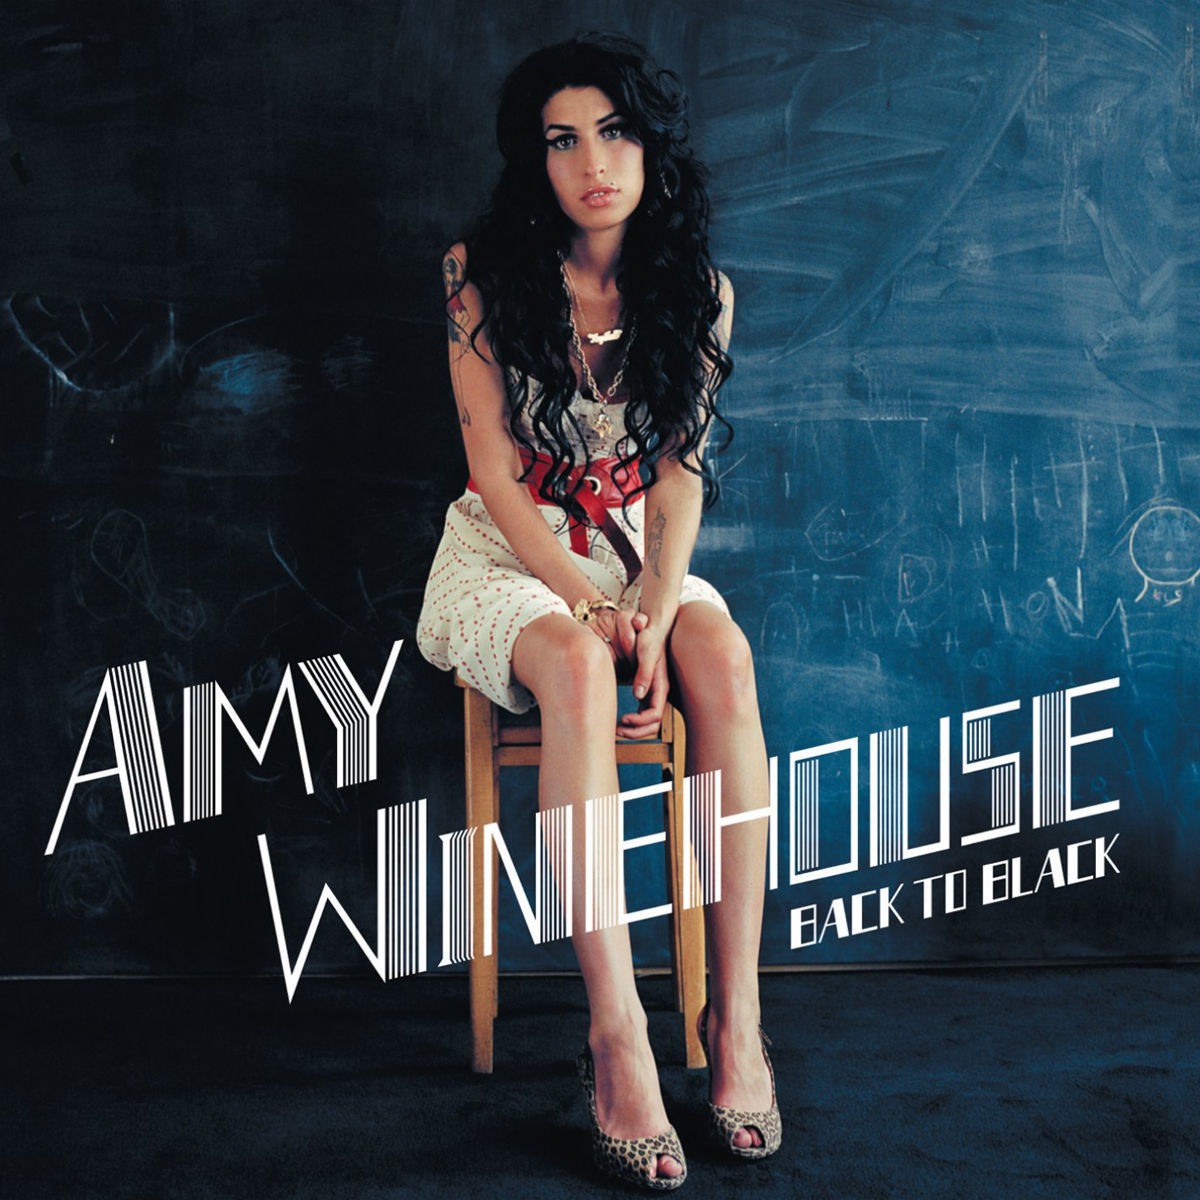 Amy Winehouse - Back To Black [LP]